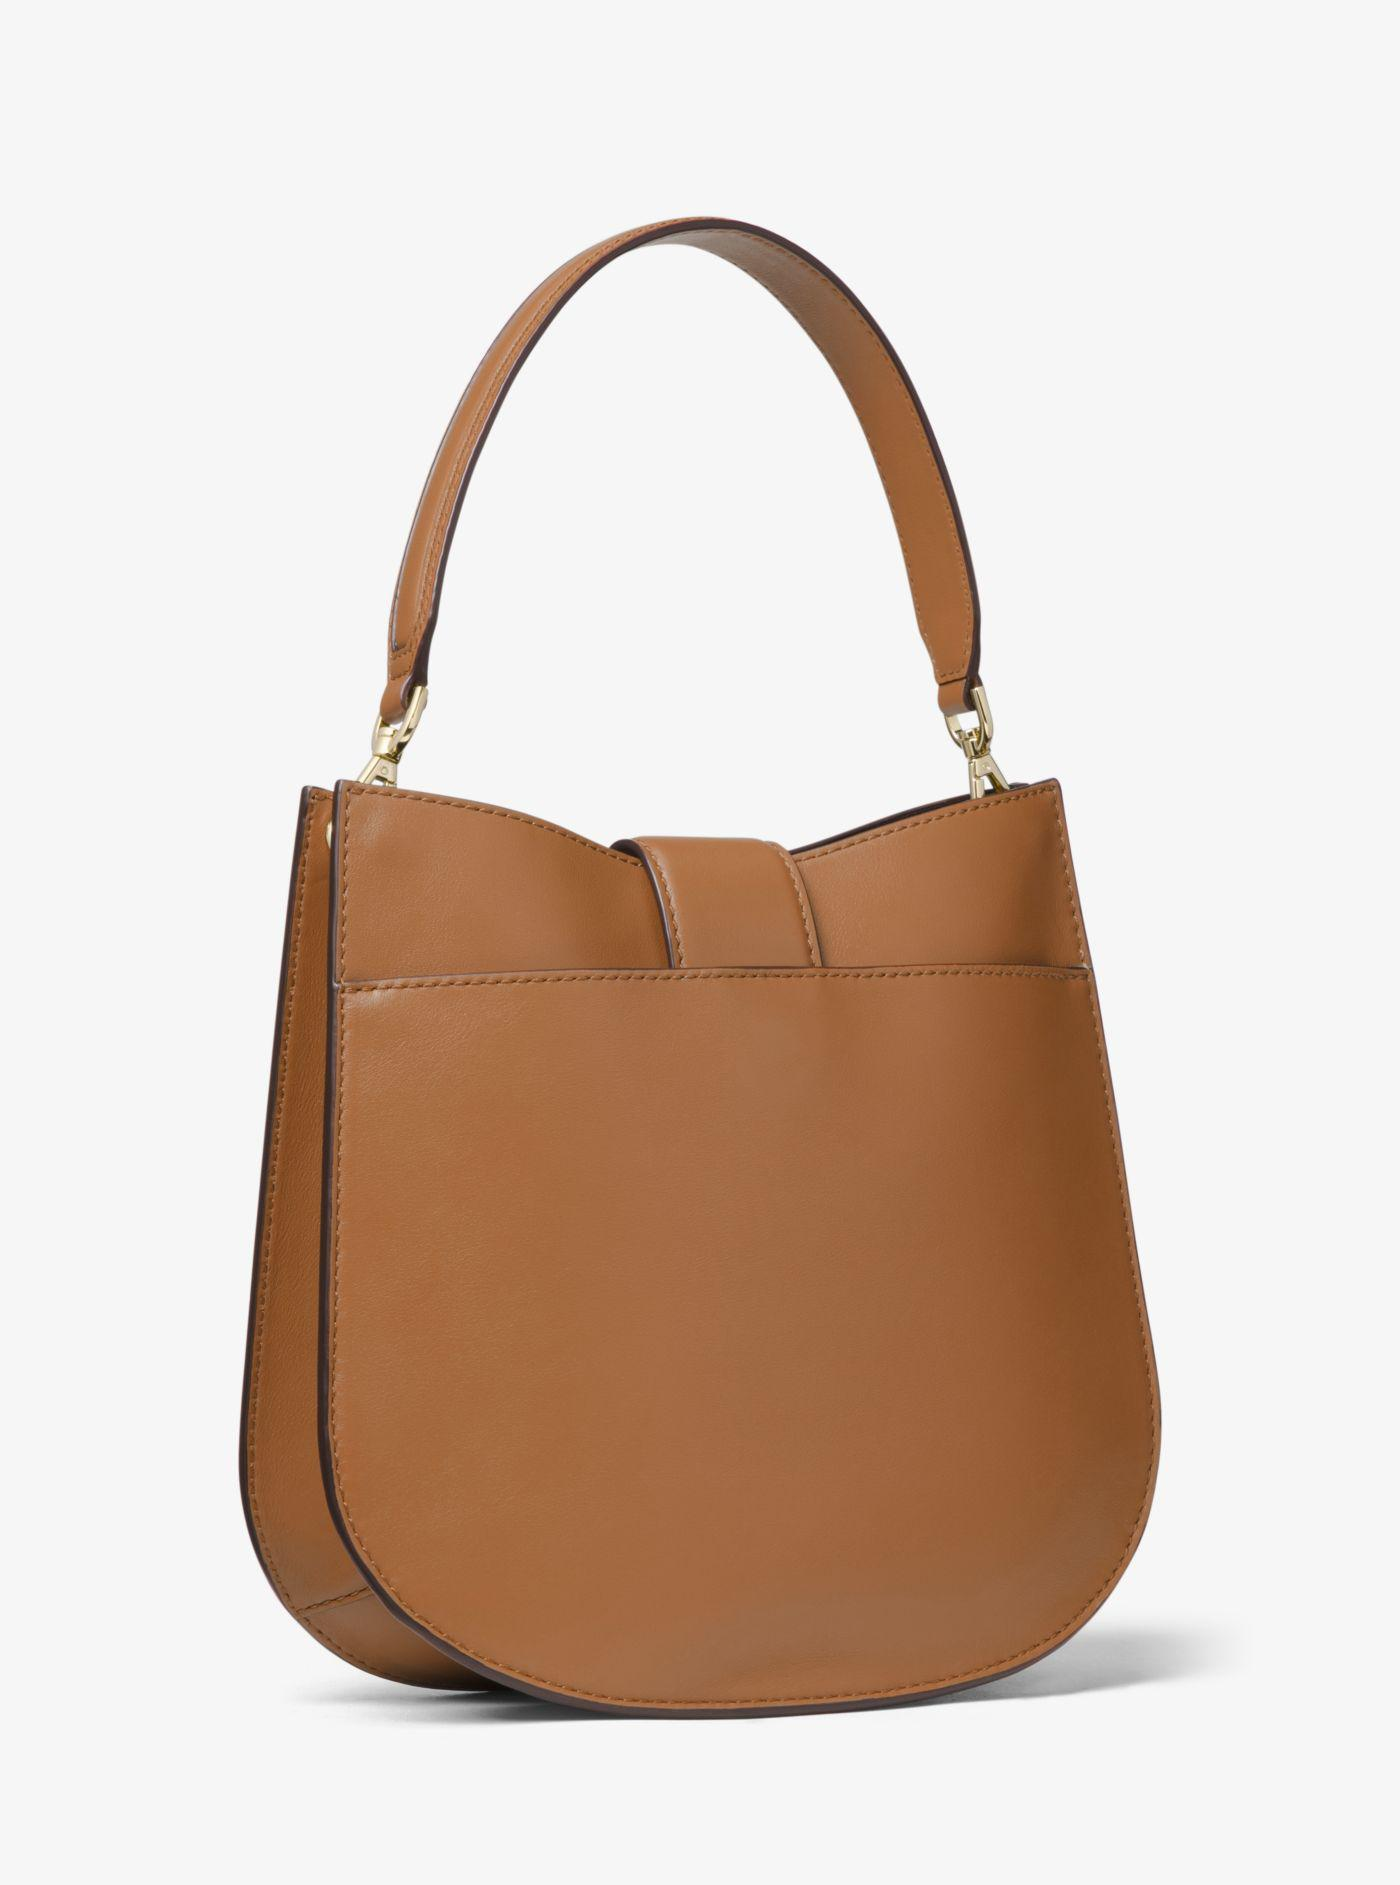 96828ac0ad80 Lyst - Michael Kors Lillie Medium Leather Shoulder Bag in Brown